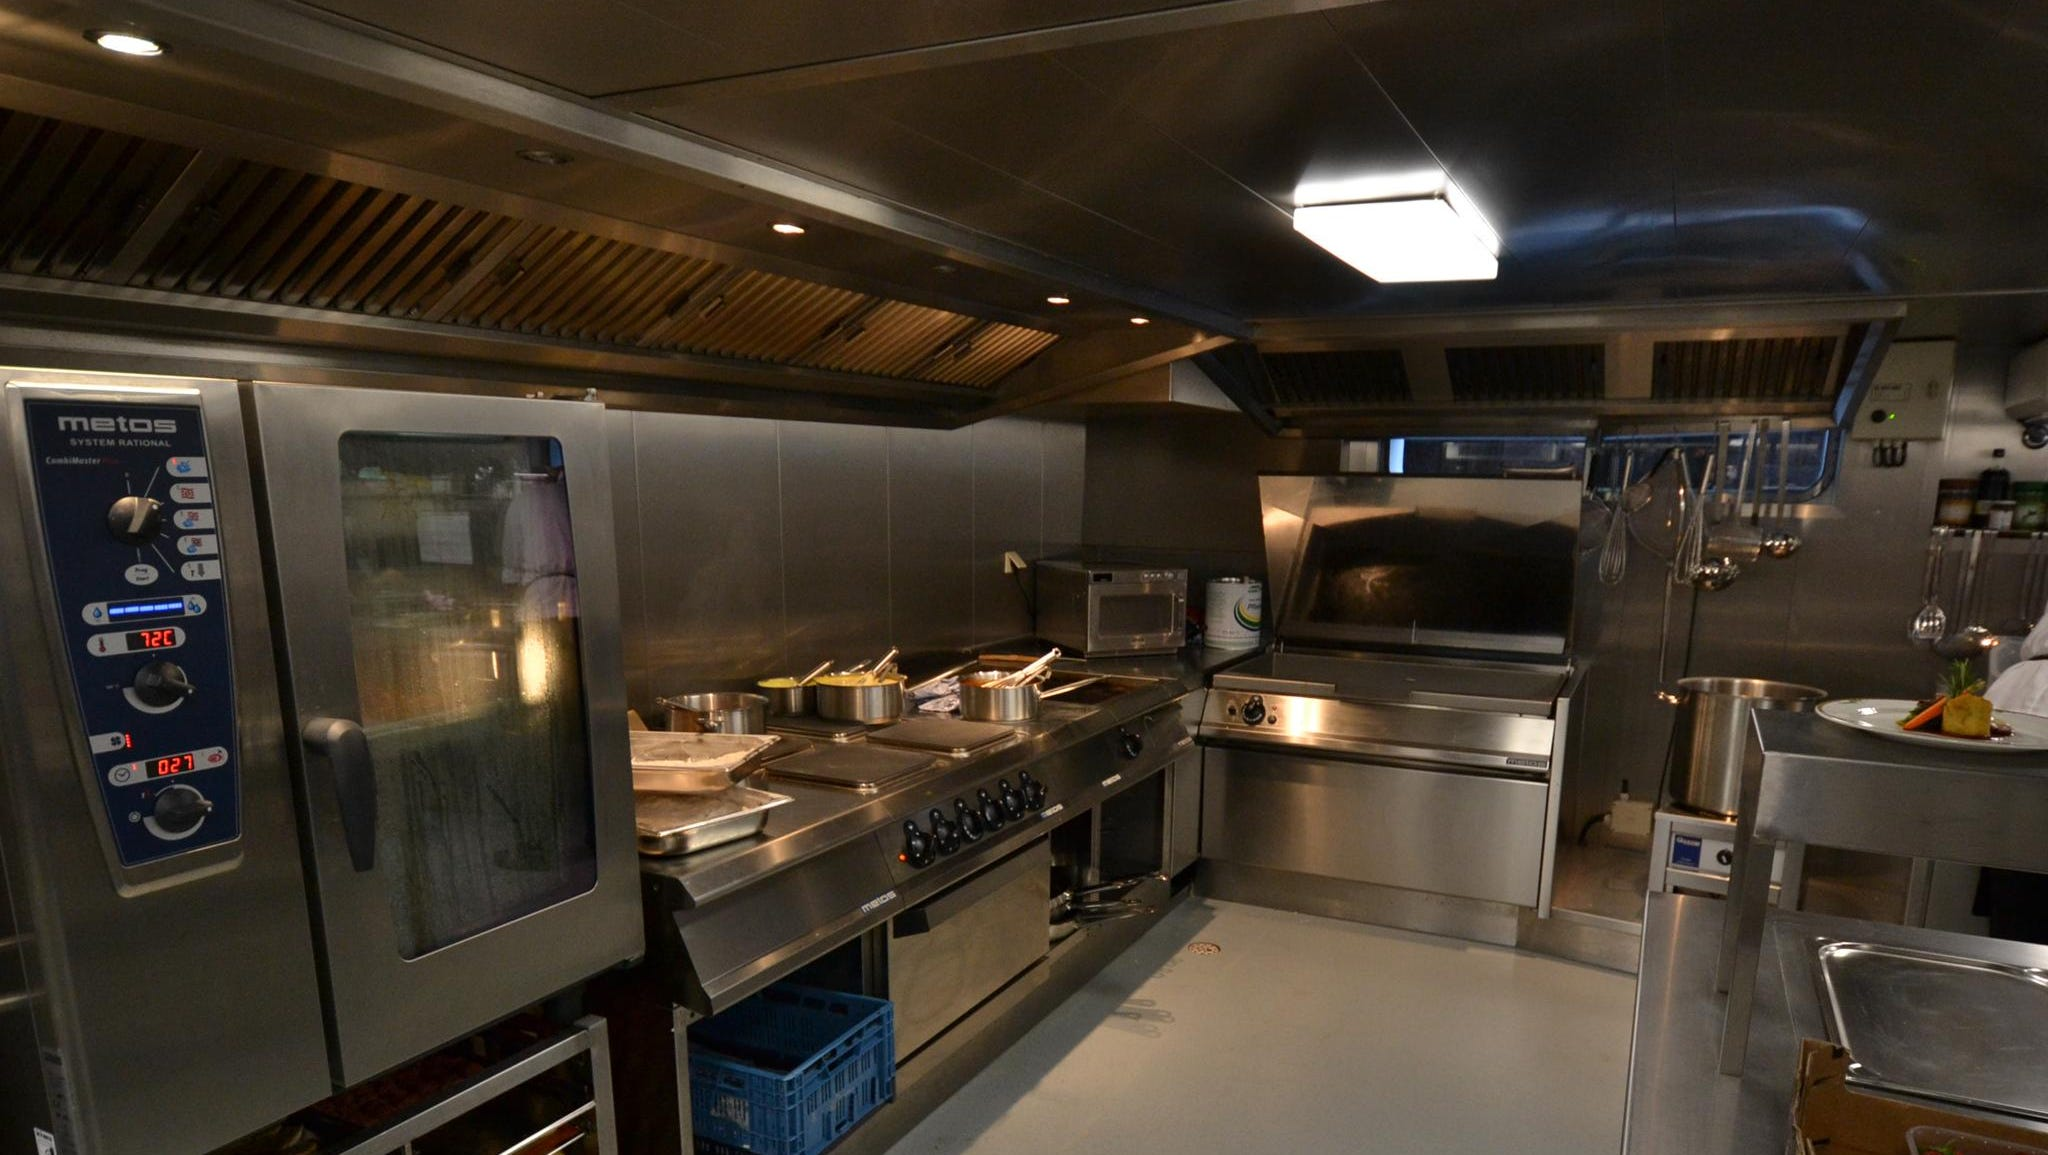 Another view inside the ship's kitchen.